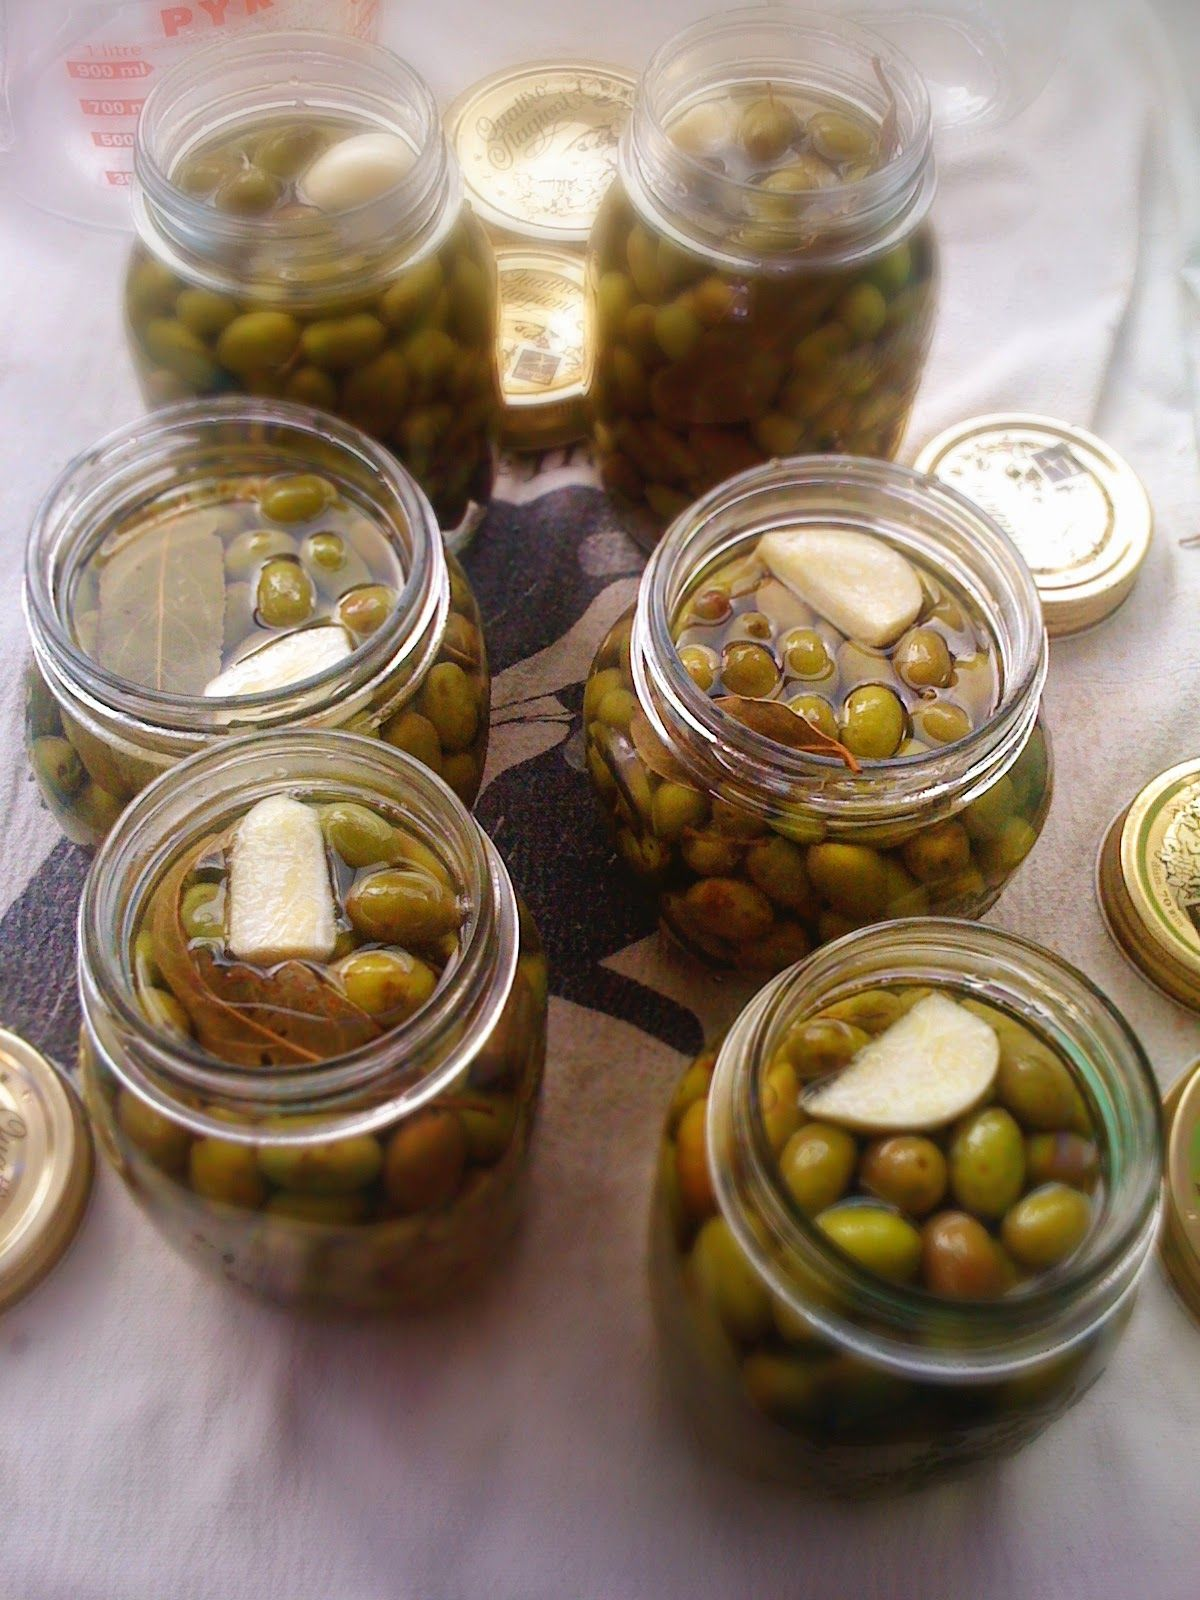 Picking, treating and preserving olives in brine, and olives marinated in olive oil and herbs #oliveoils